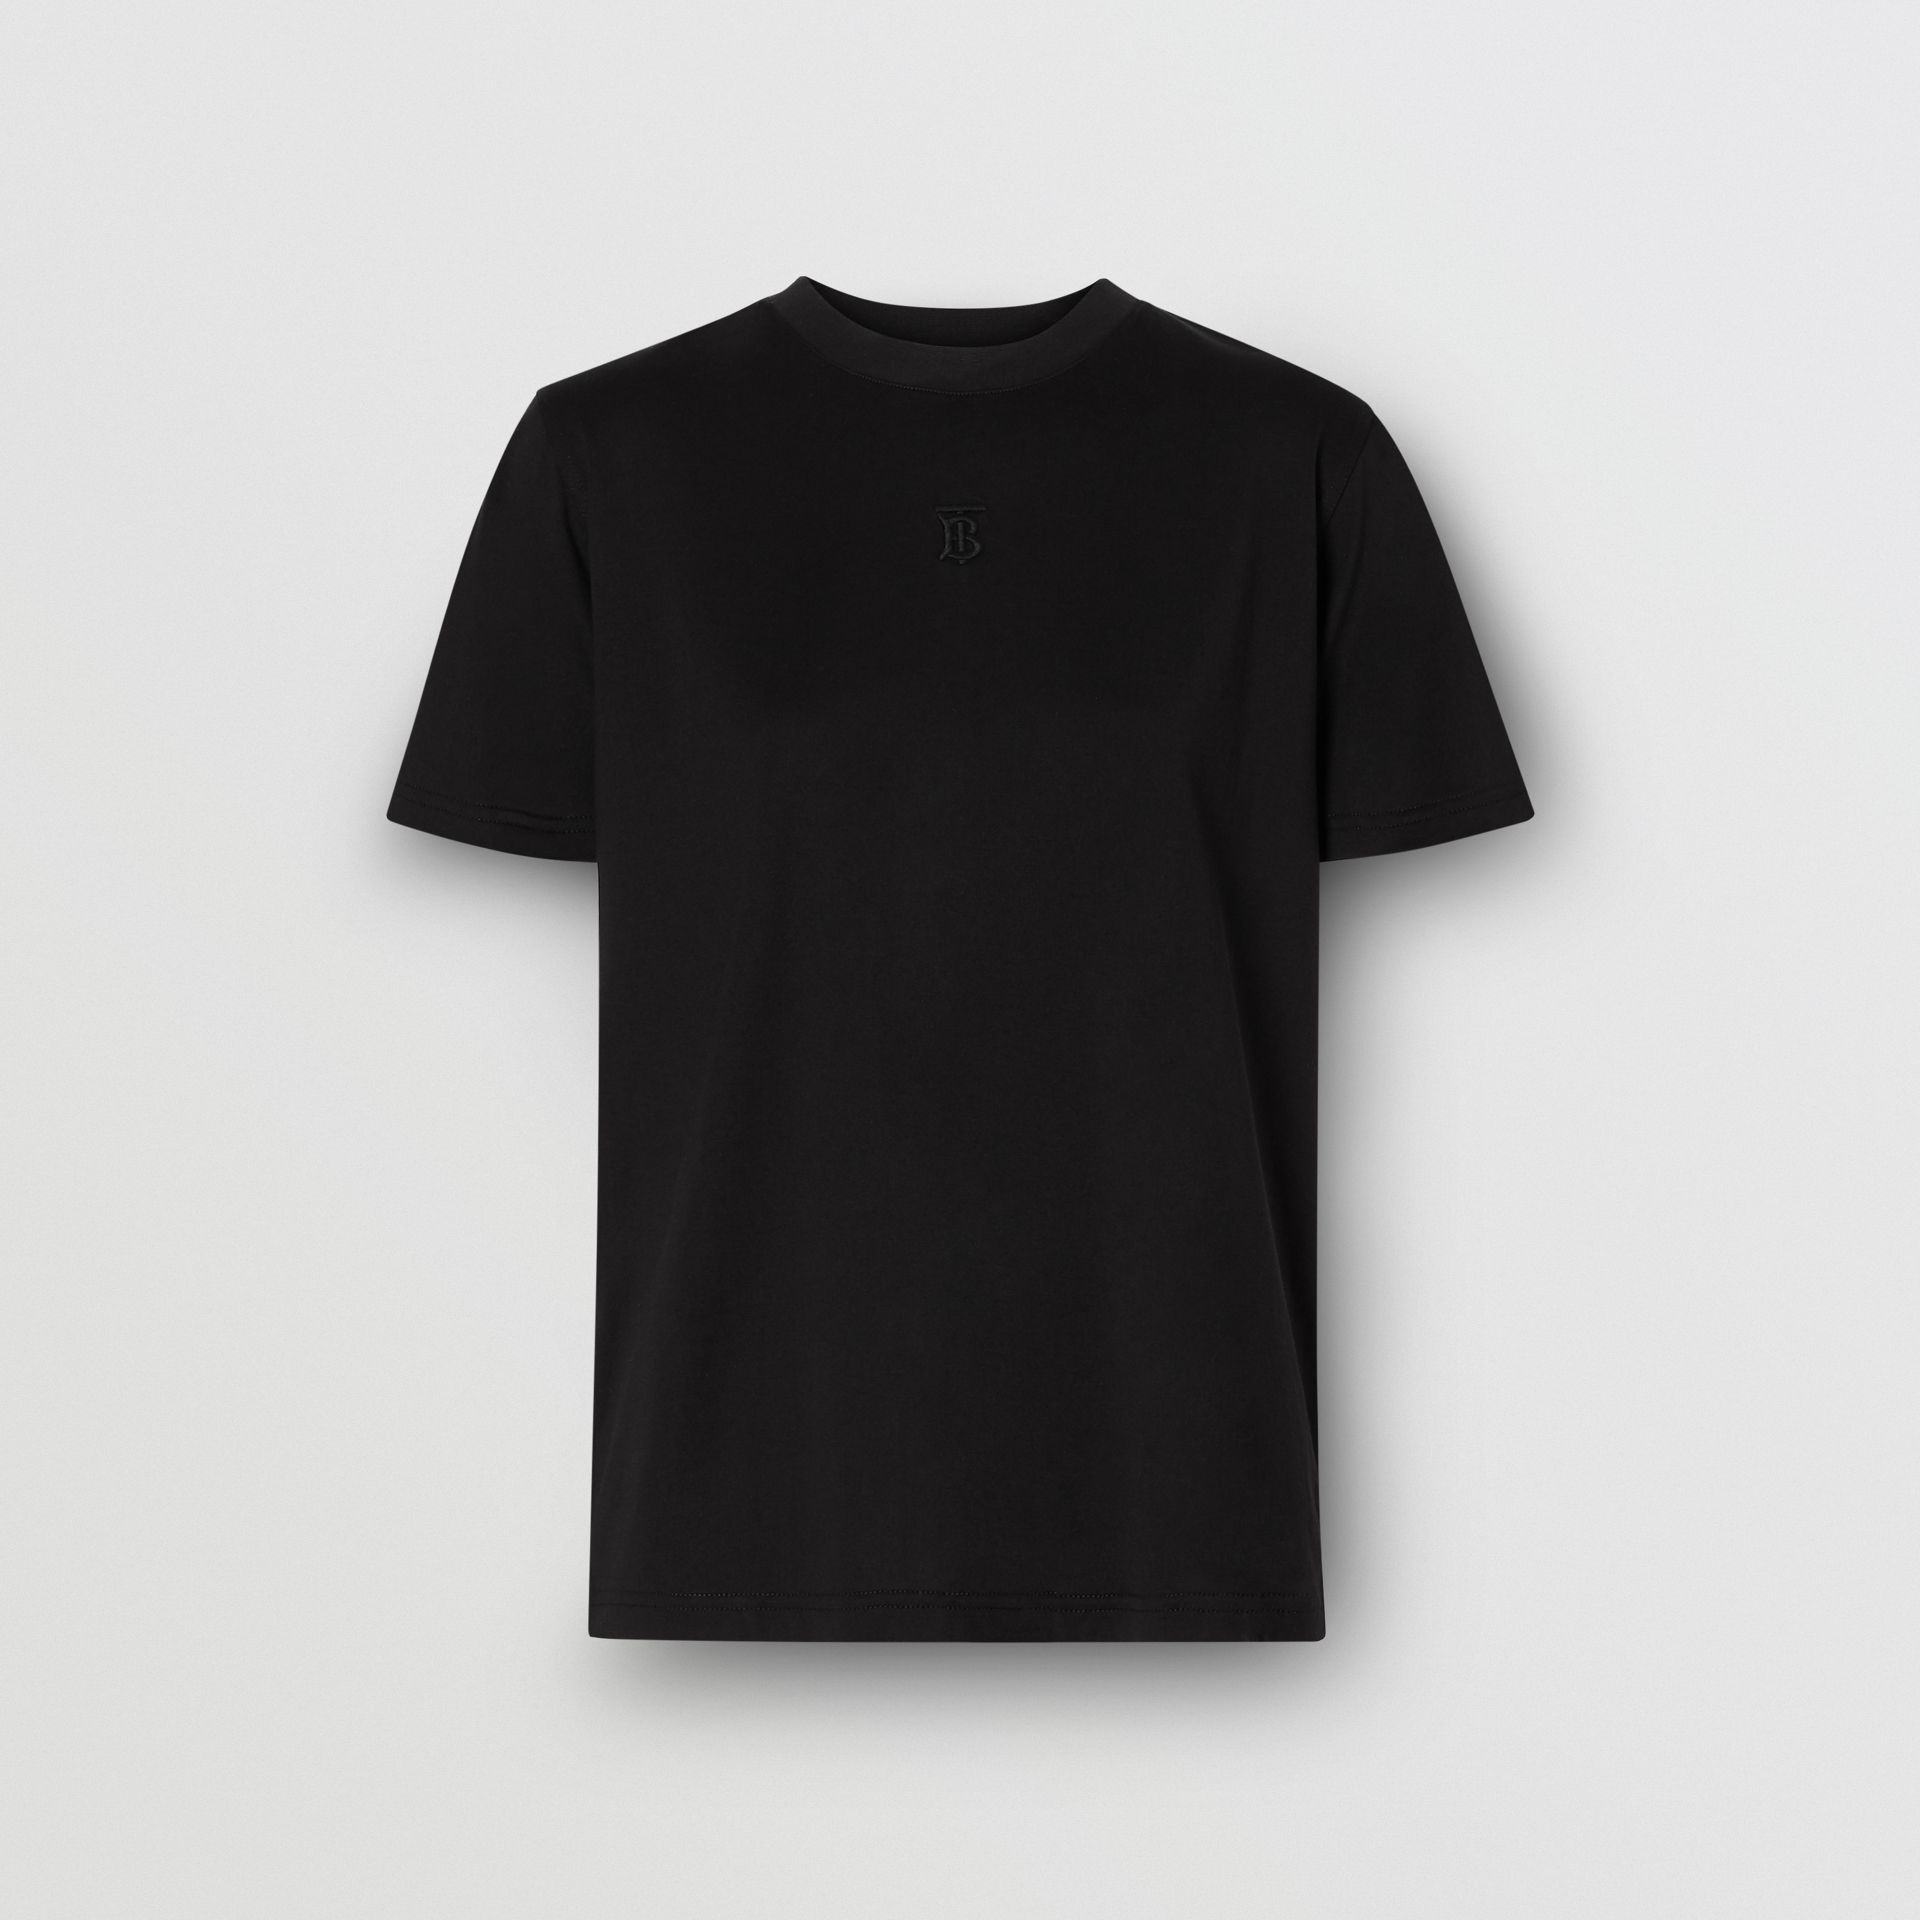 Monogram Motif Cotton T-shirt in Black - Women | Burberry United Kingdom - gallery image 3